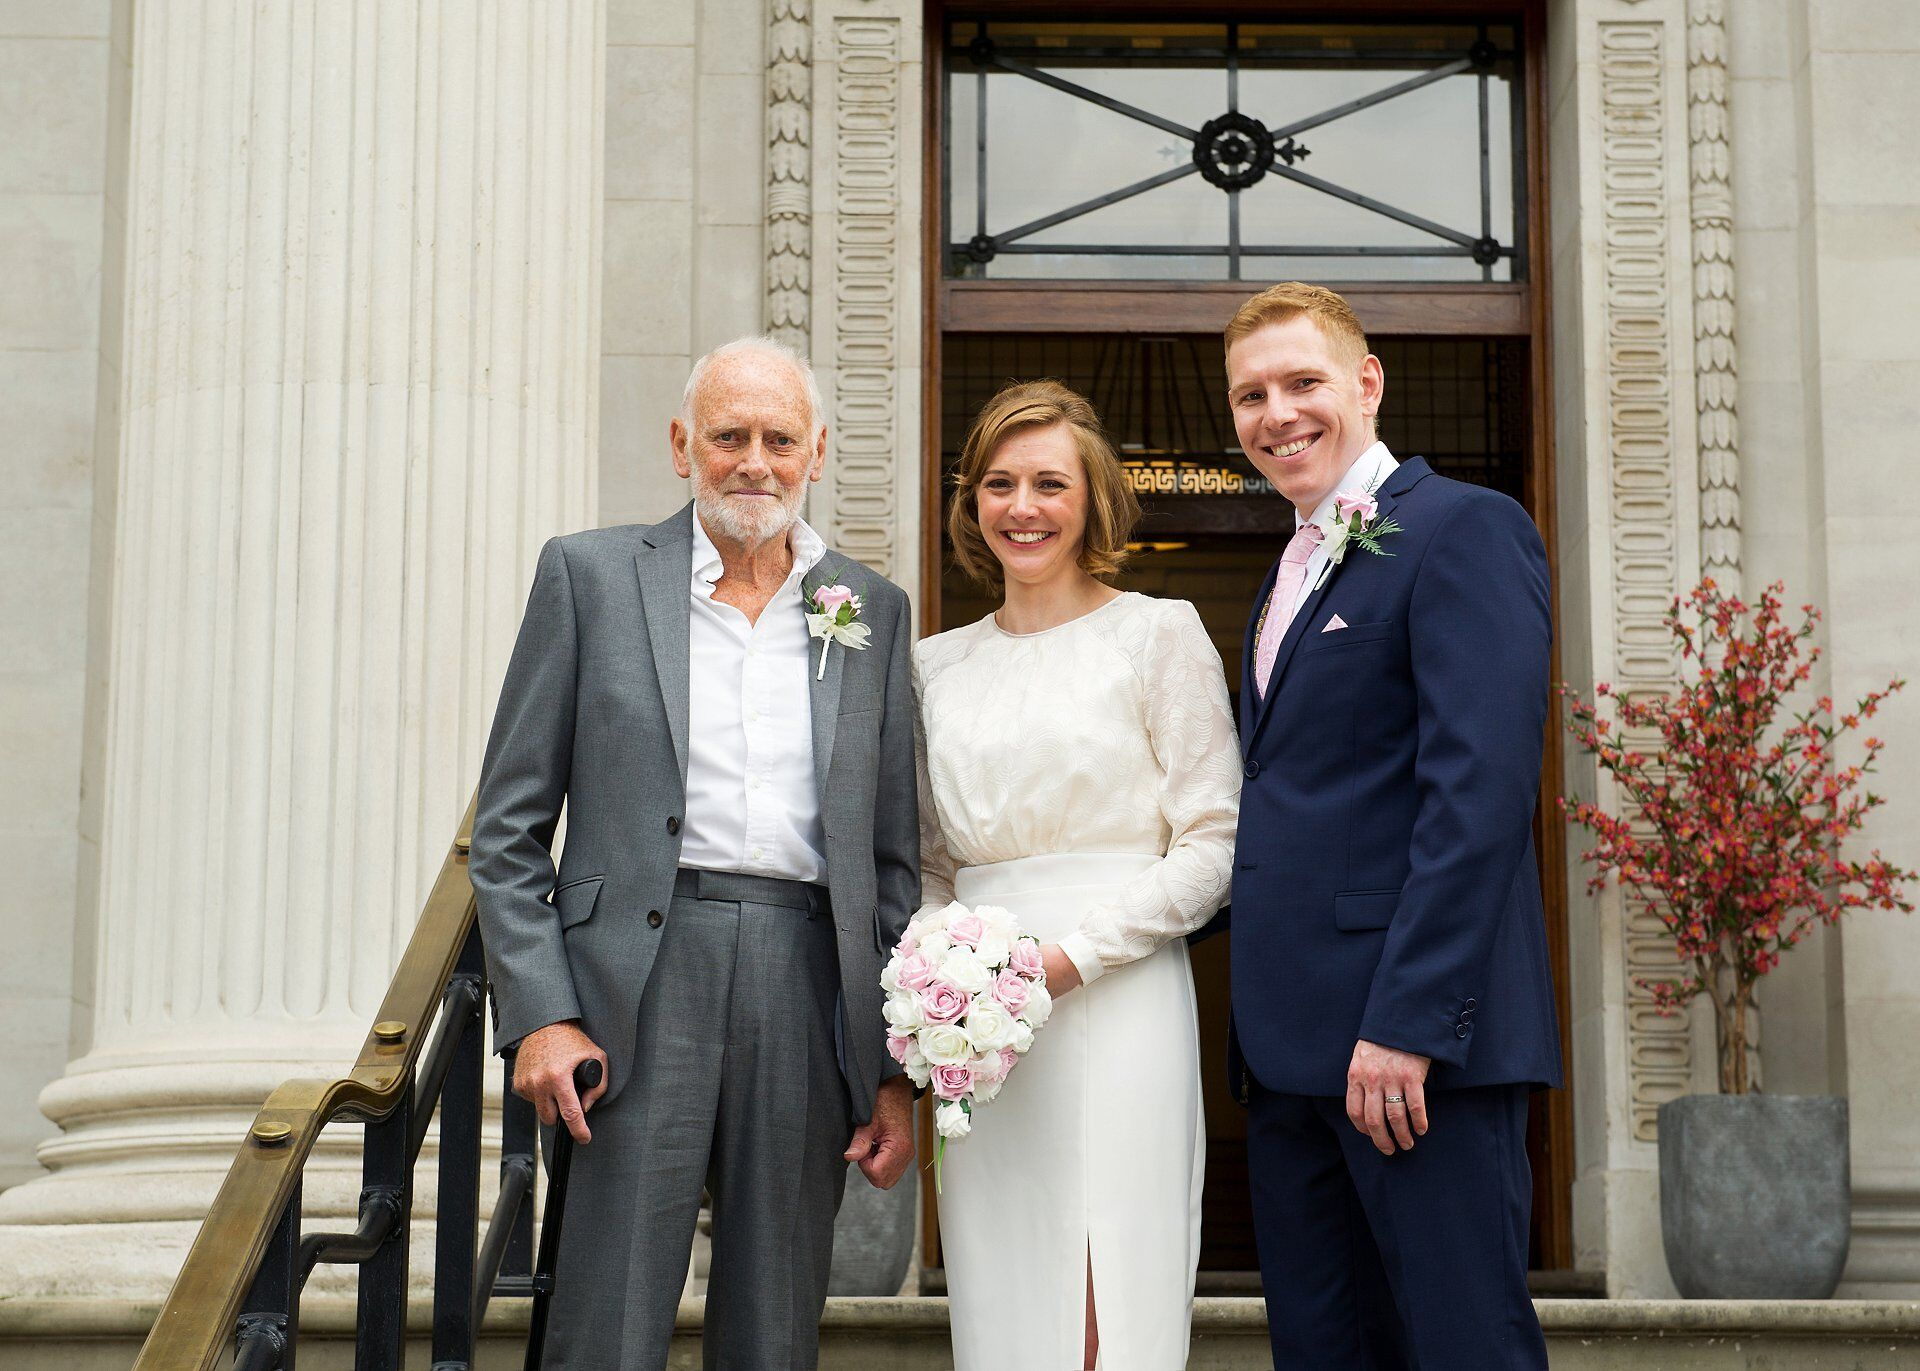 get married at celebrity wedding venue paul mccartney old marylebone town hall